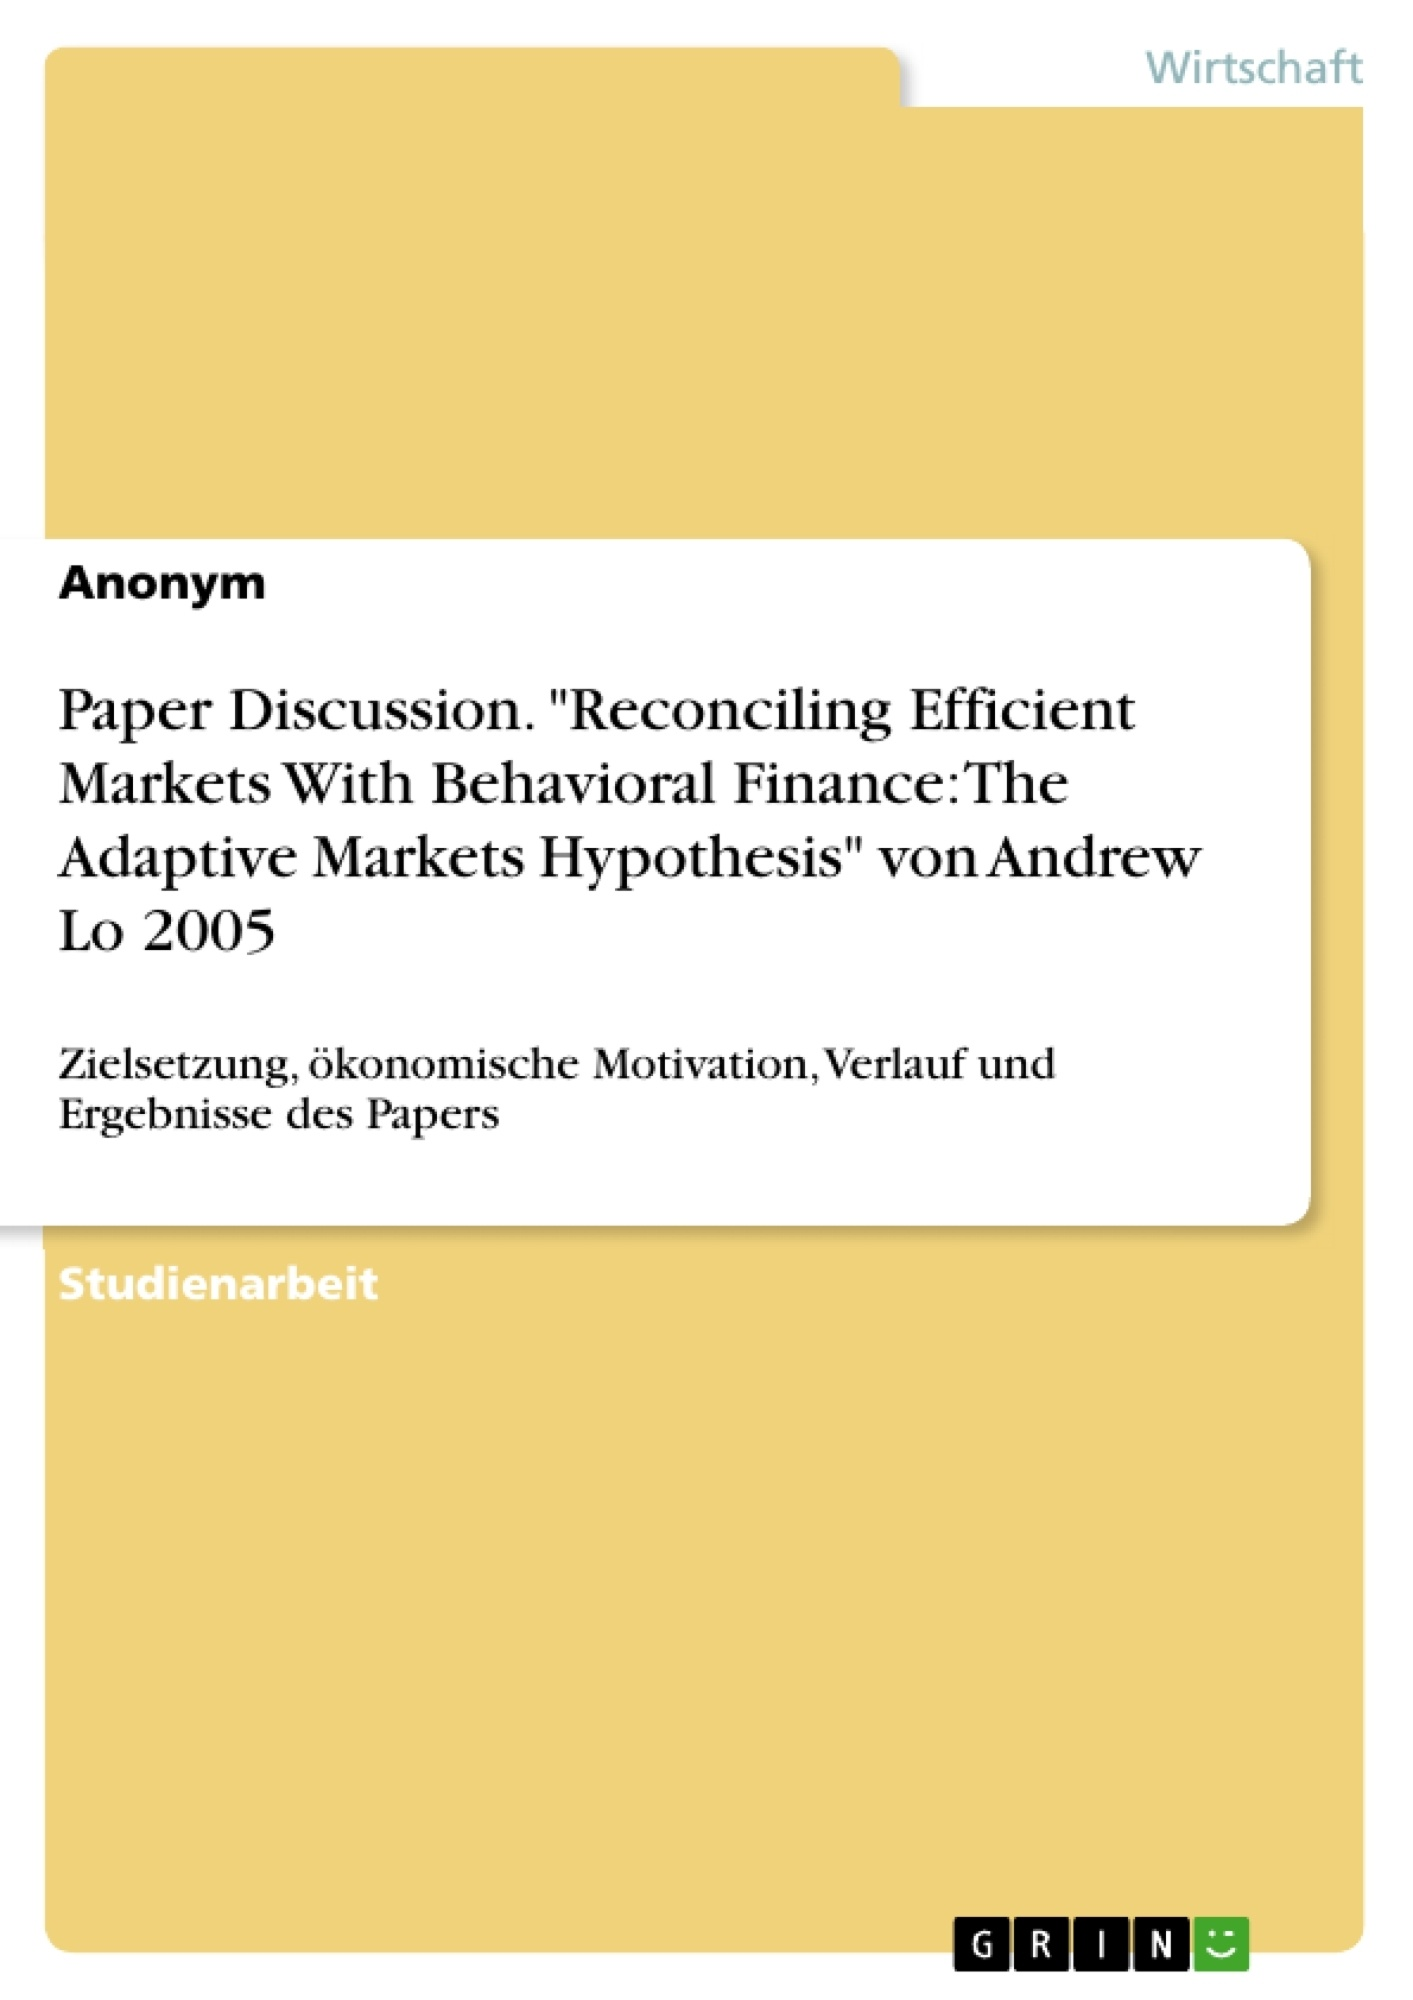 """Titel: Paper Discussion. """"Reconciling Efficient Markets With Behavioral Finance: The Adaptive Markets Hypothesis"""" von Andrew Lo 2005"""